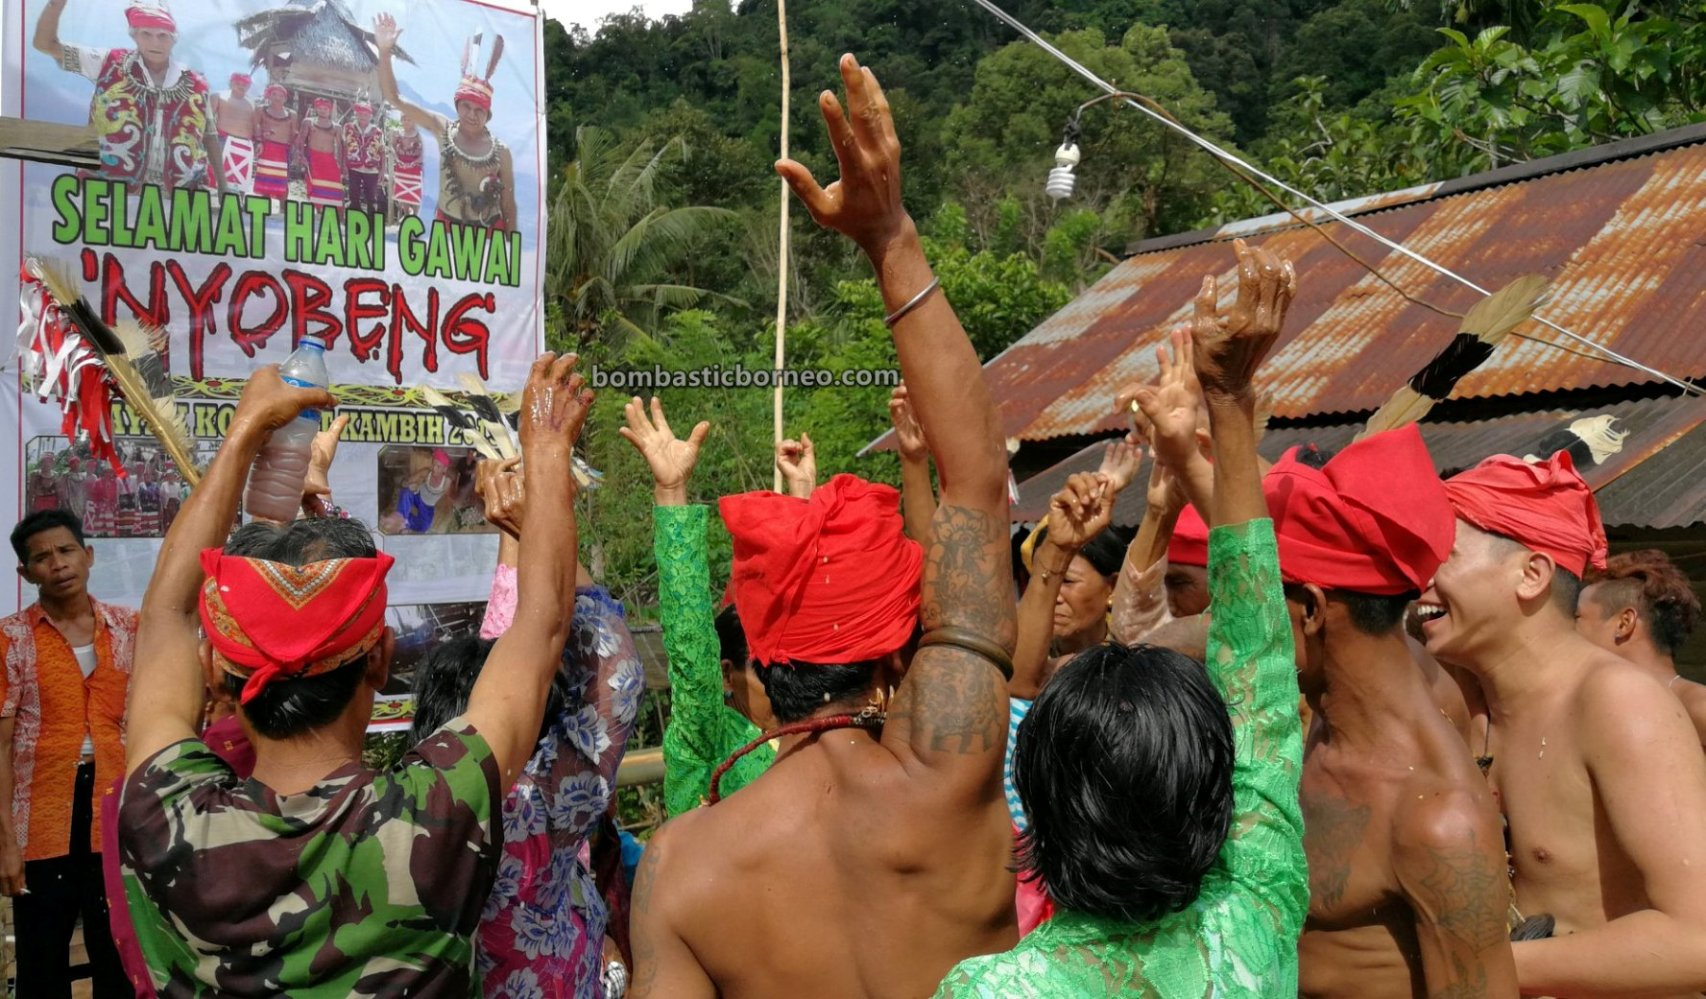 Nyobeng Kambih, Paddy Harvest Festival, traditional, Culture, event, Indonesia, Desa Bengkawan, indigenous, tribal, obyek wisata, Tourism, Travel guide, Trans Borneo, 婆羅洲达雅传统文化, 印尼西加里曼丹, 孟加映比达友丰收节